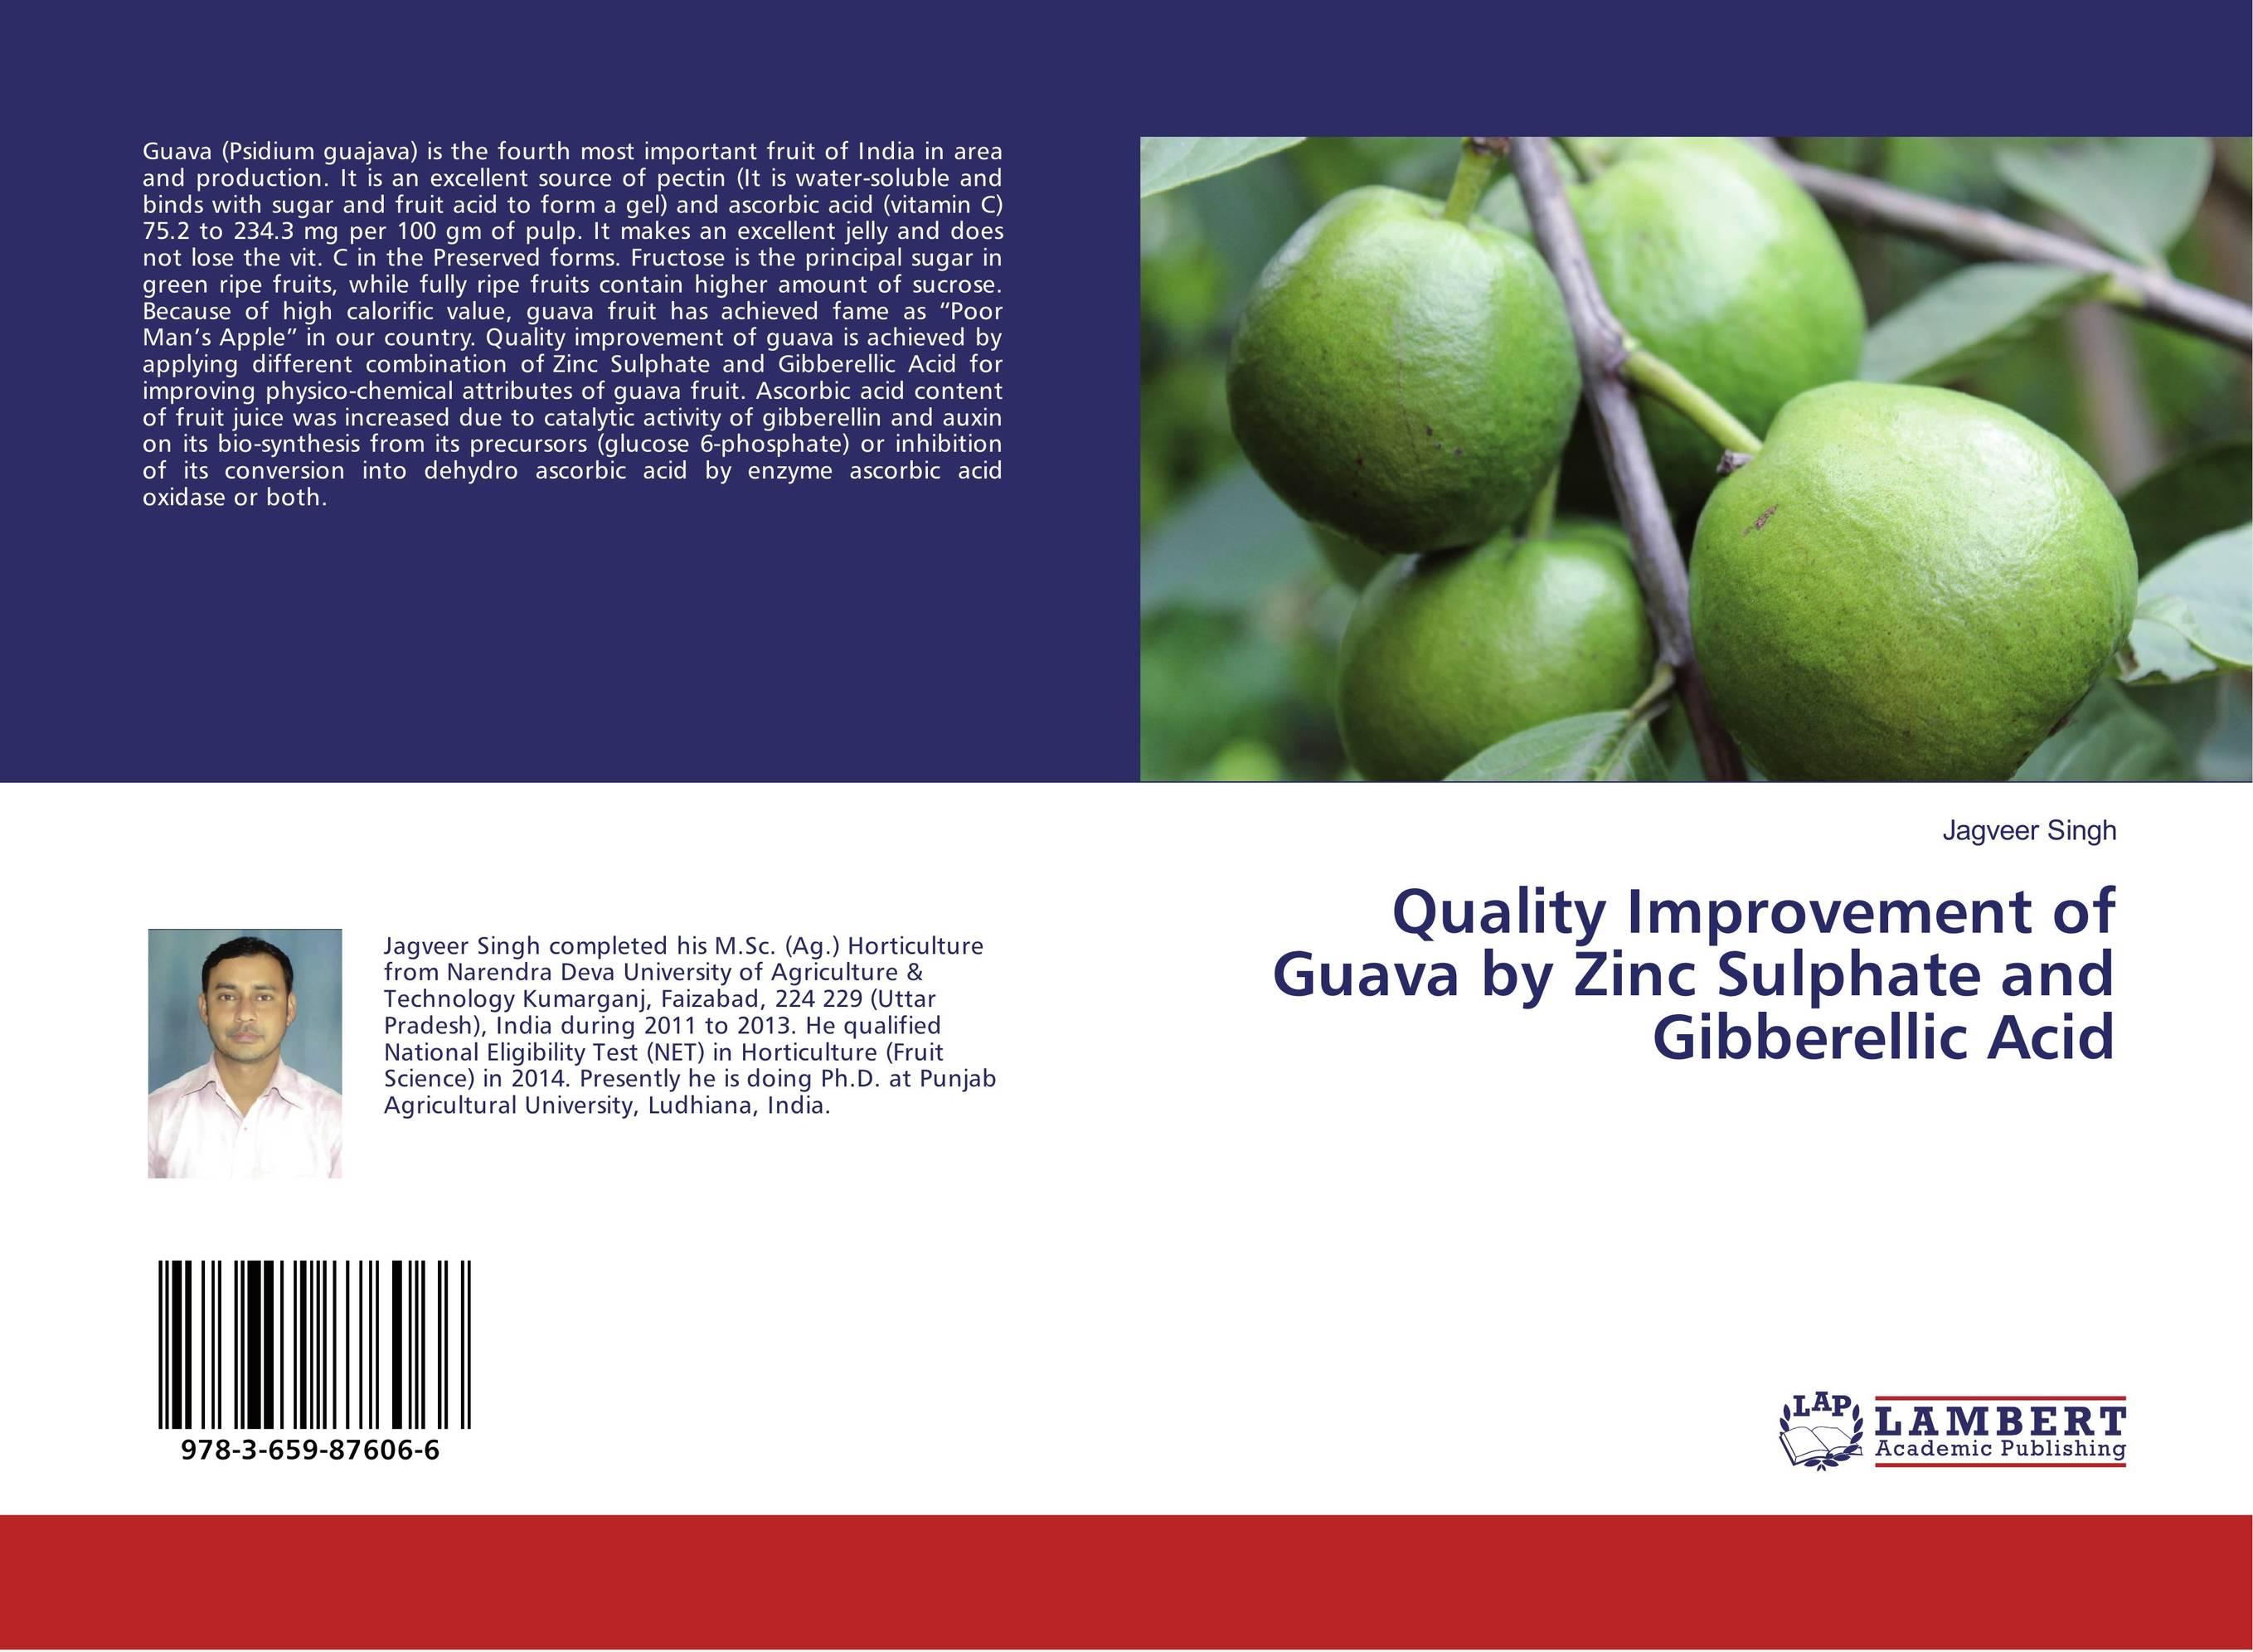 Quality Improvement of Guava by Zinc Sulphate and Gibberellic Acid strain improvement for hyperproduction of citric acid